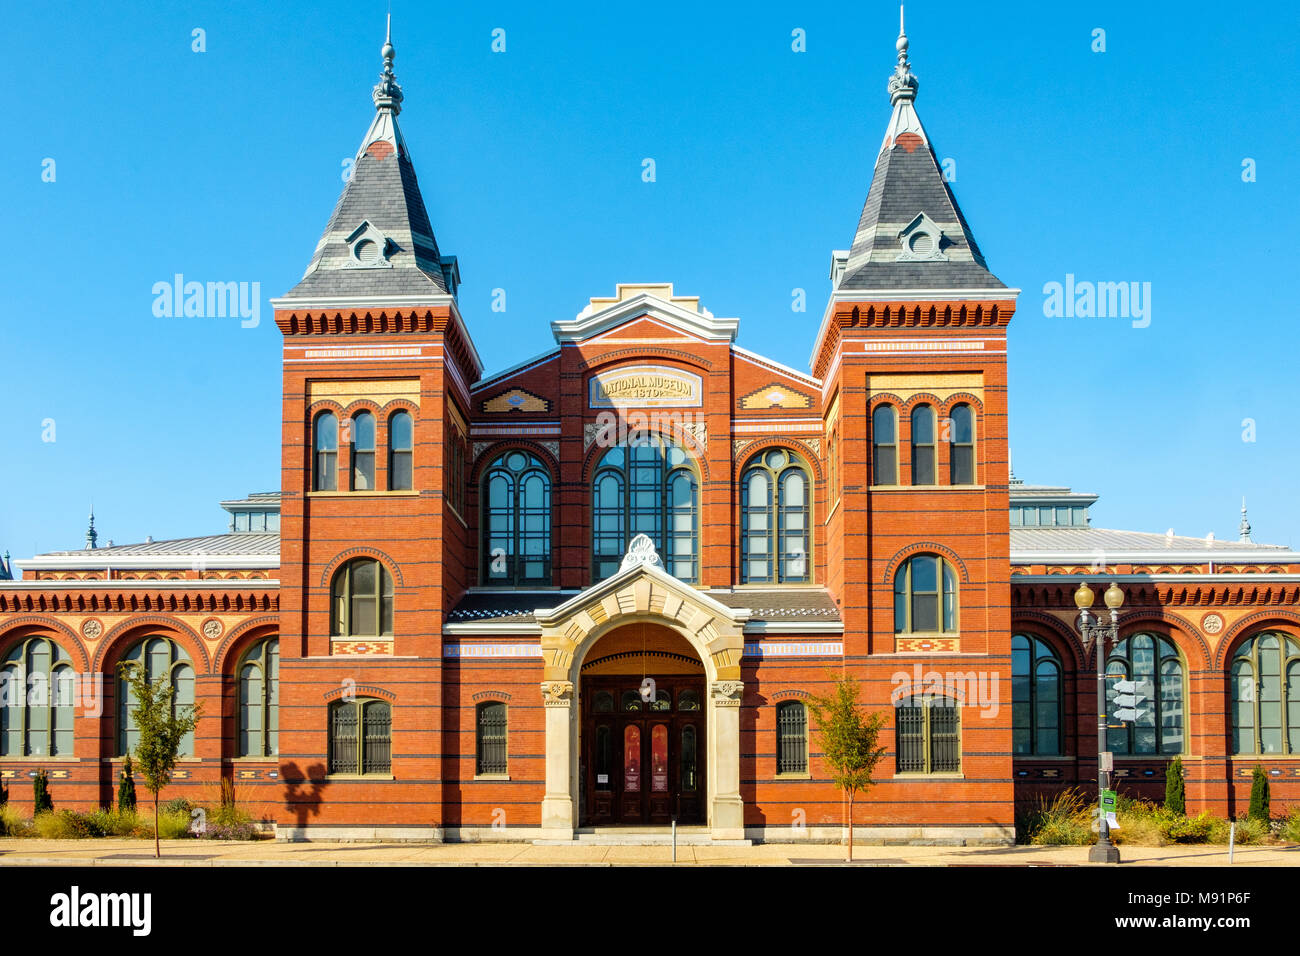 Arts and Industries Building, Smithsonian Museum, 900 Jefferson Drive SW, Washington DC - Stock Image